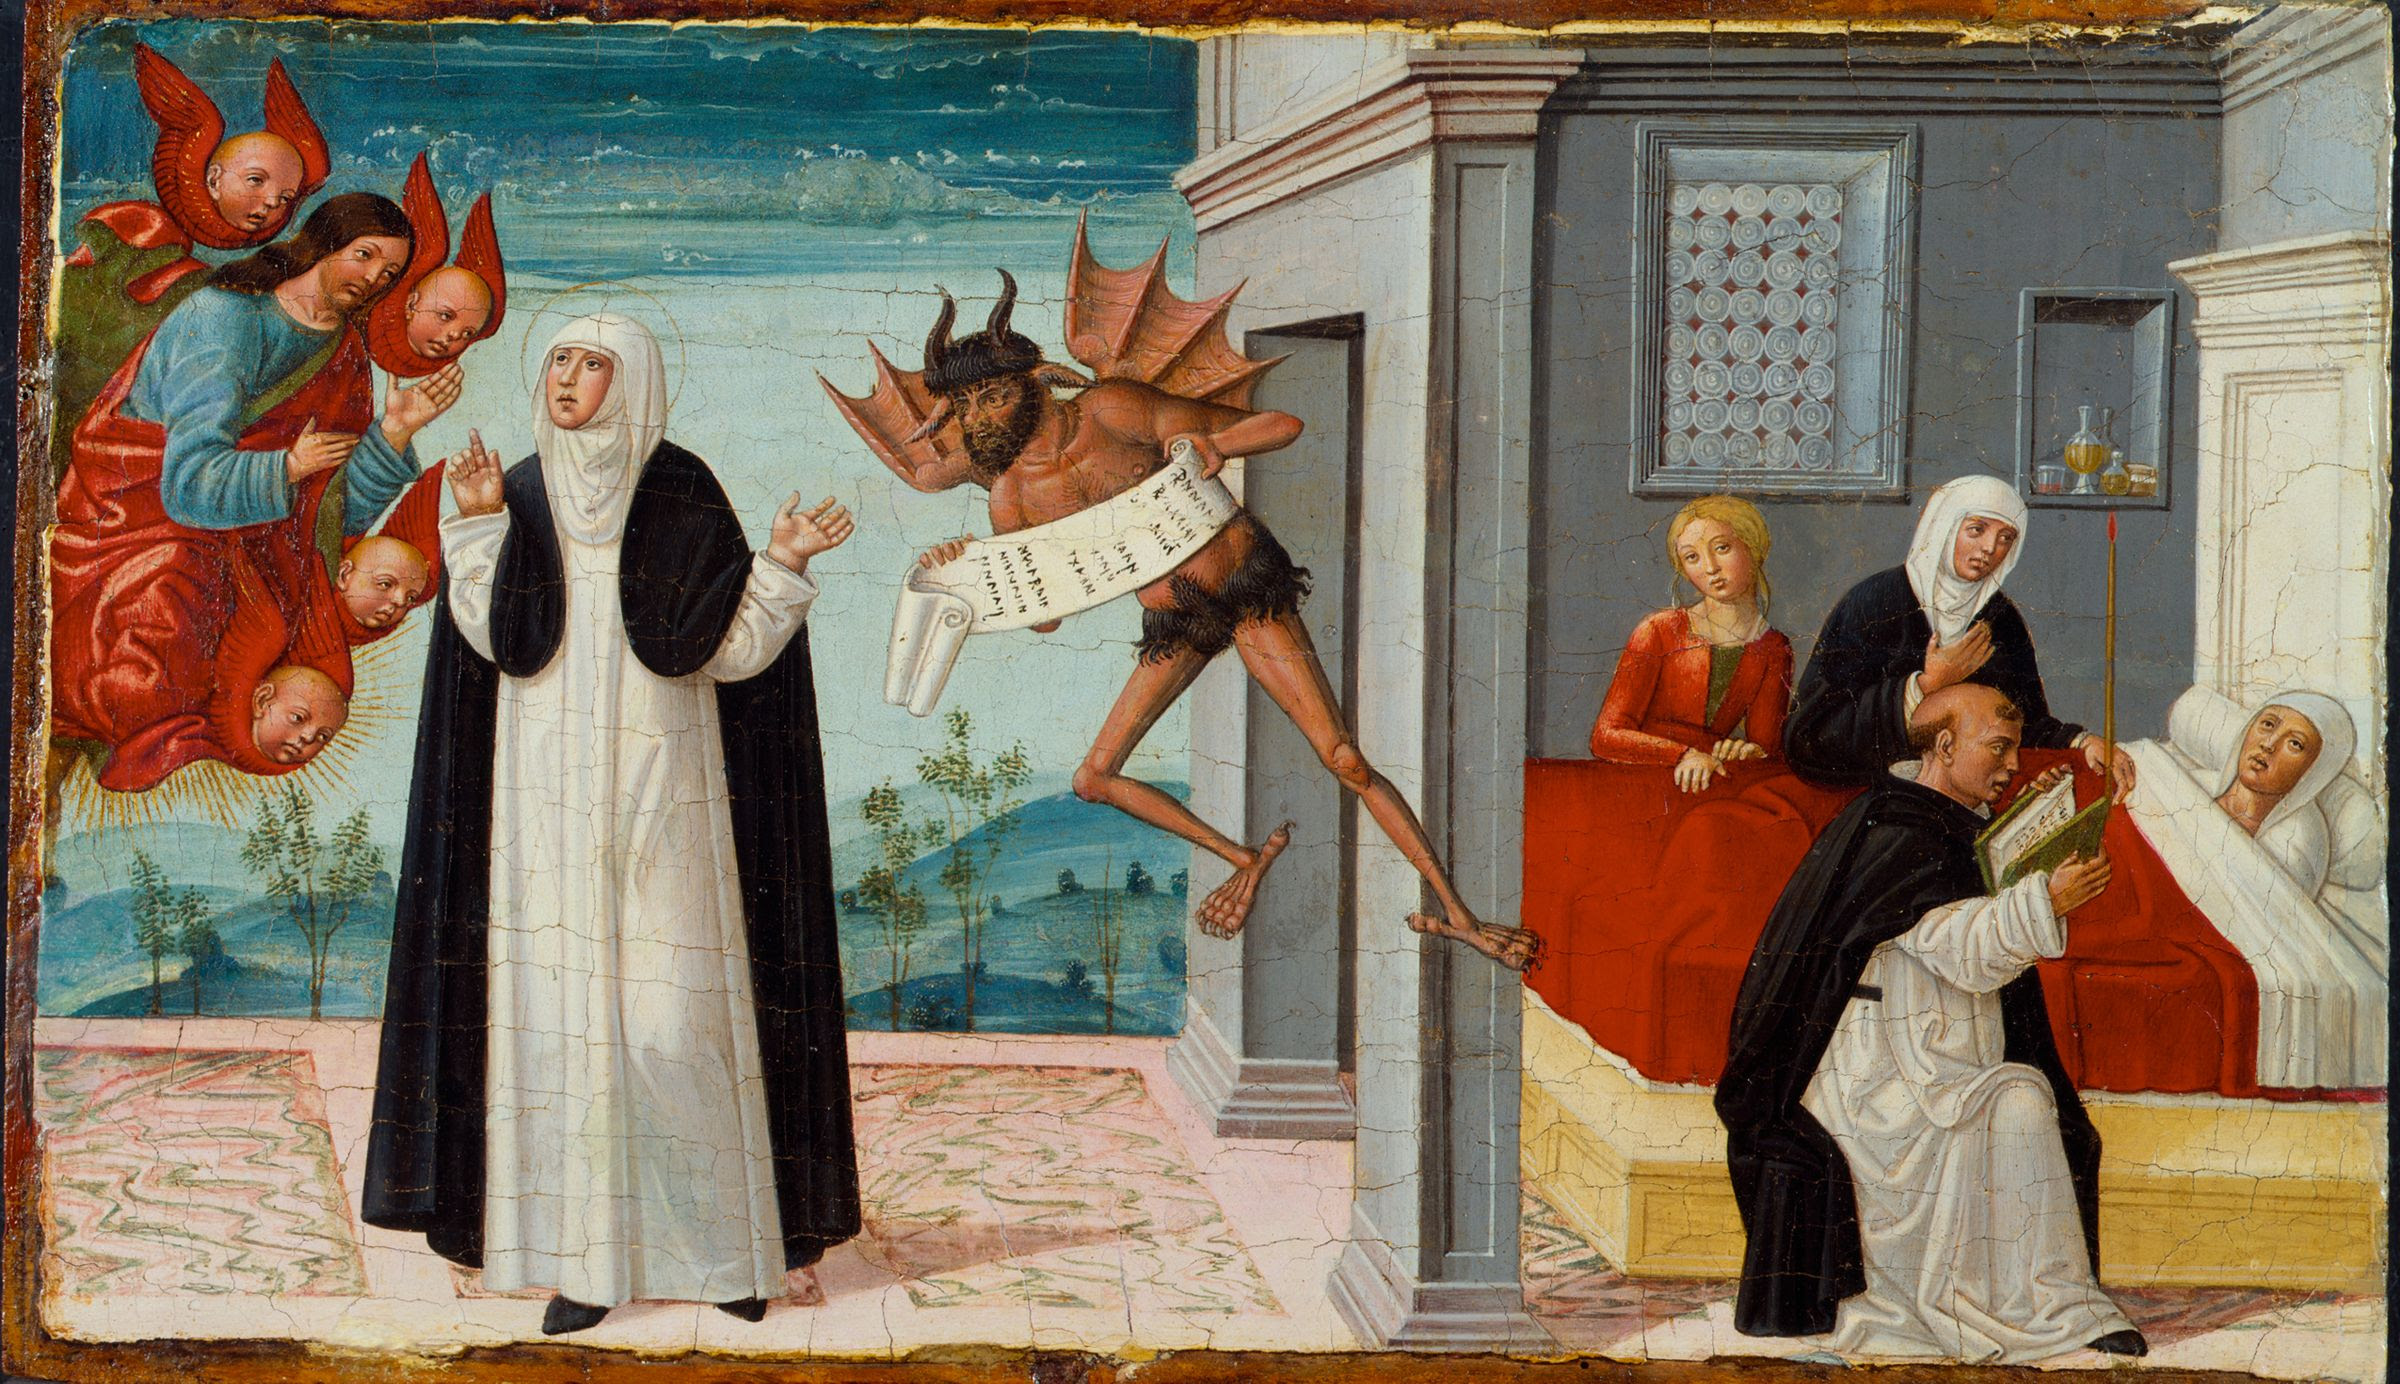 Saint Catherine Of Siena Intercedes With Christ To Release The Dying Sister Palmerina From Her Pact With The Devil